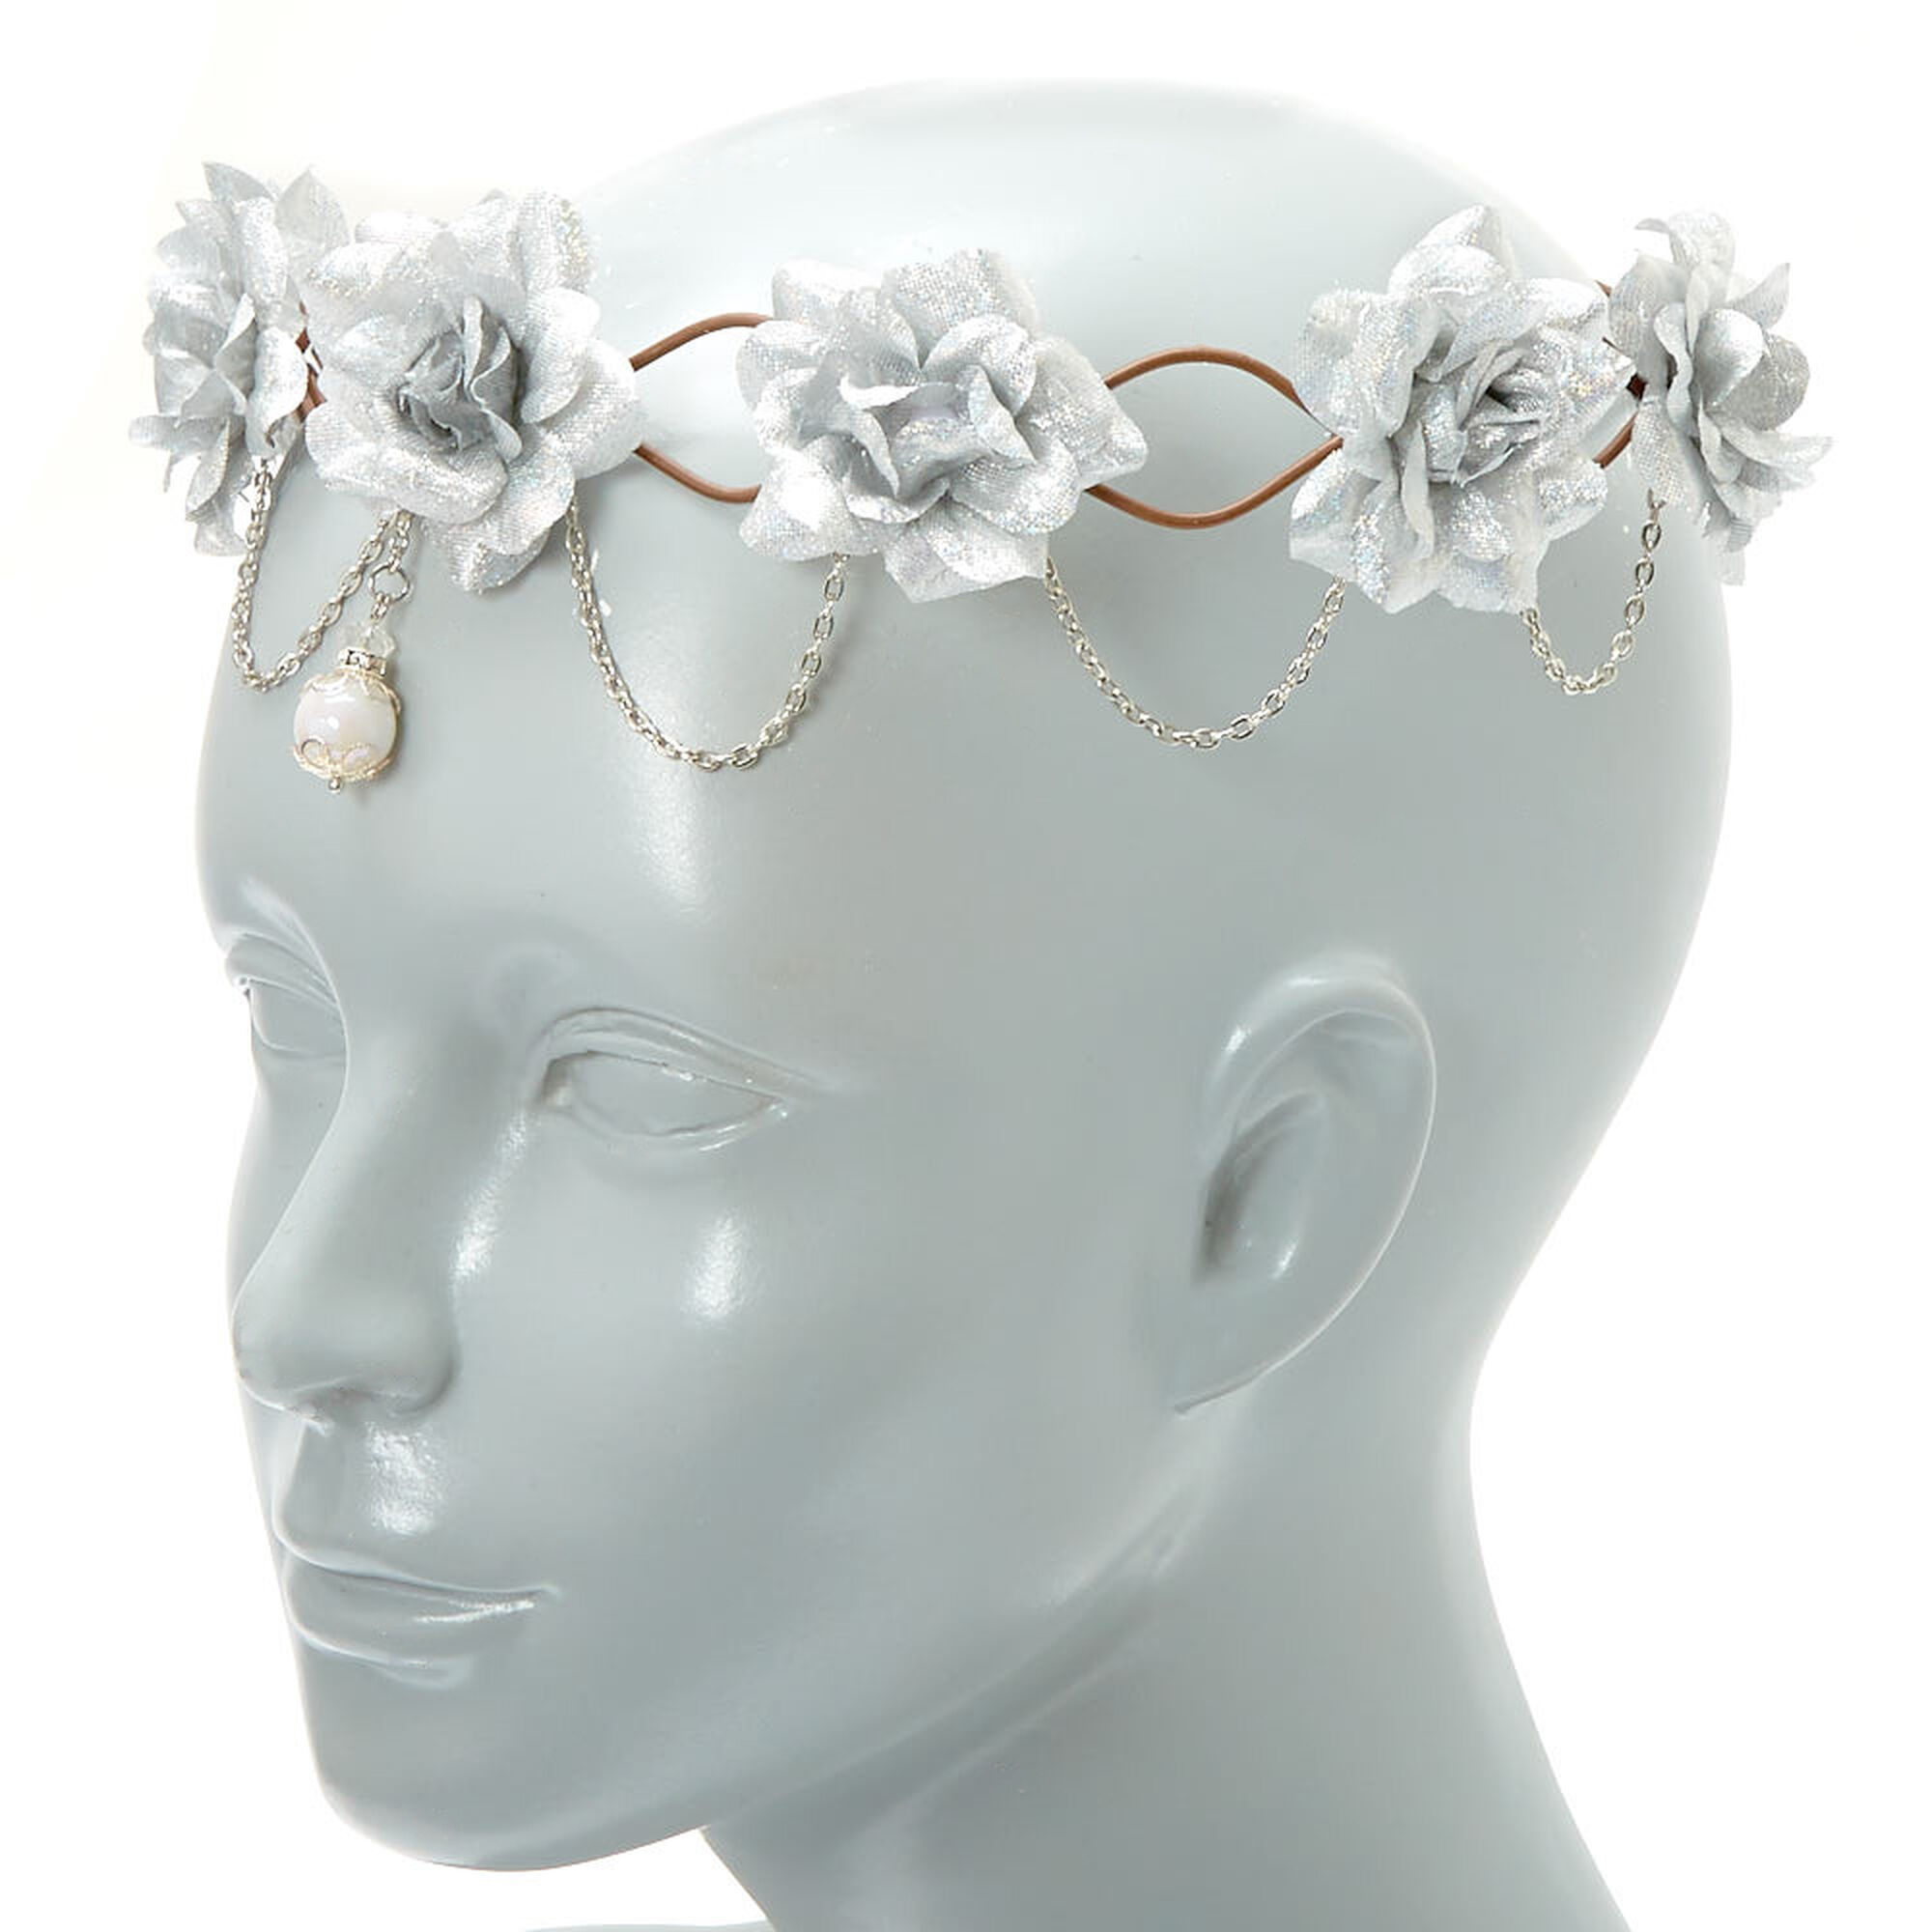 Silver flowers chains flower crown claires chains flower crown silver flowers amp chains flower izmirmasajfo